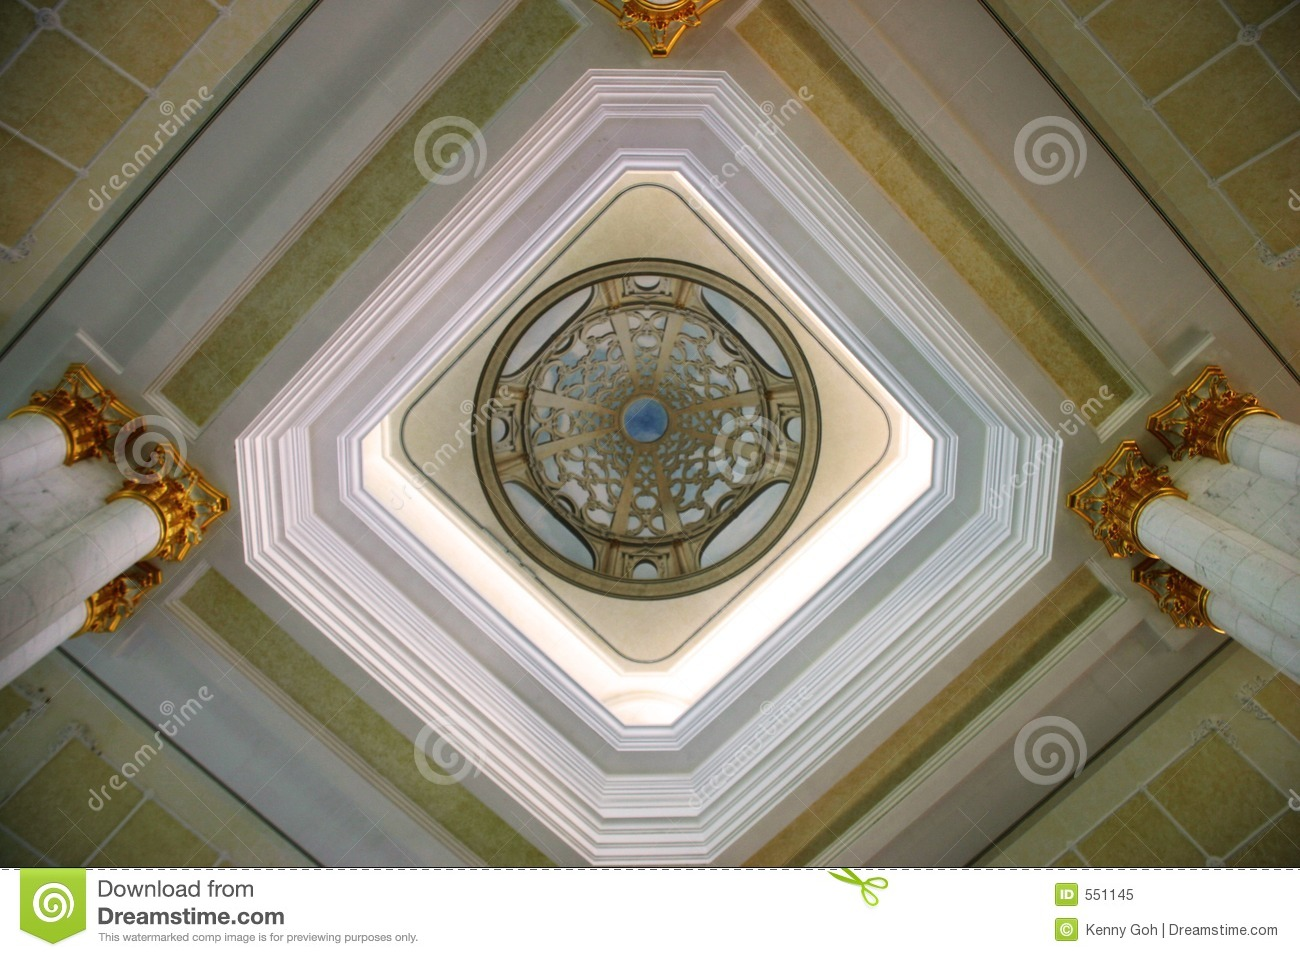 Ceiling Design Vector Artistic Ceiling Design Stock Image Image Of Islam